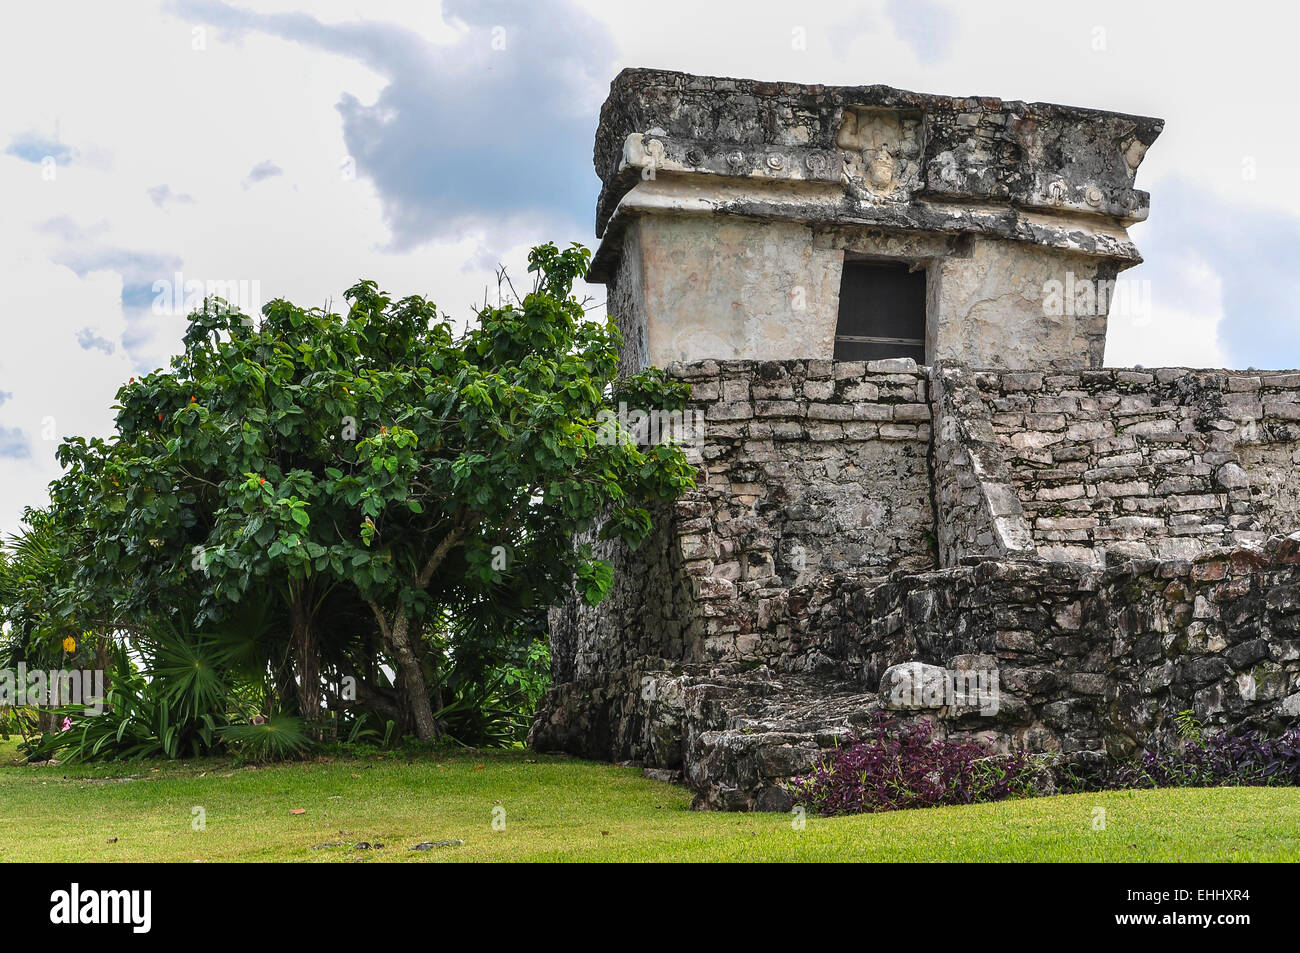 Mayan Ruin - Chichen Itza Mexico Stock Photo